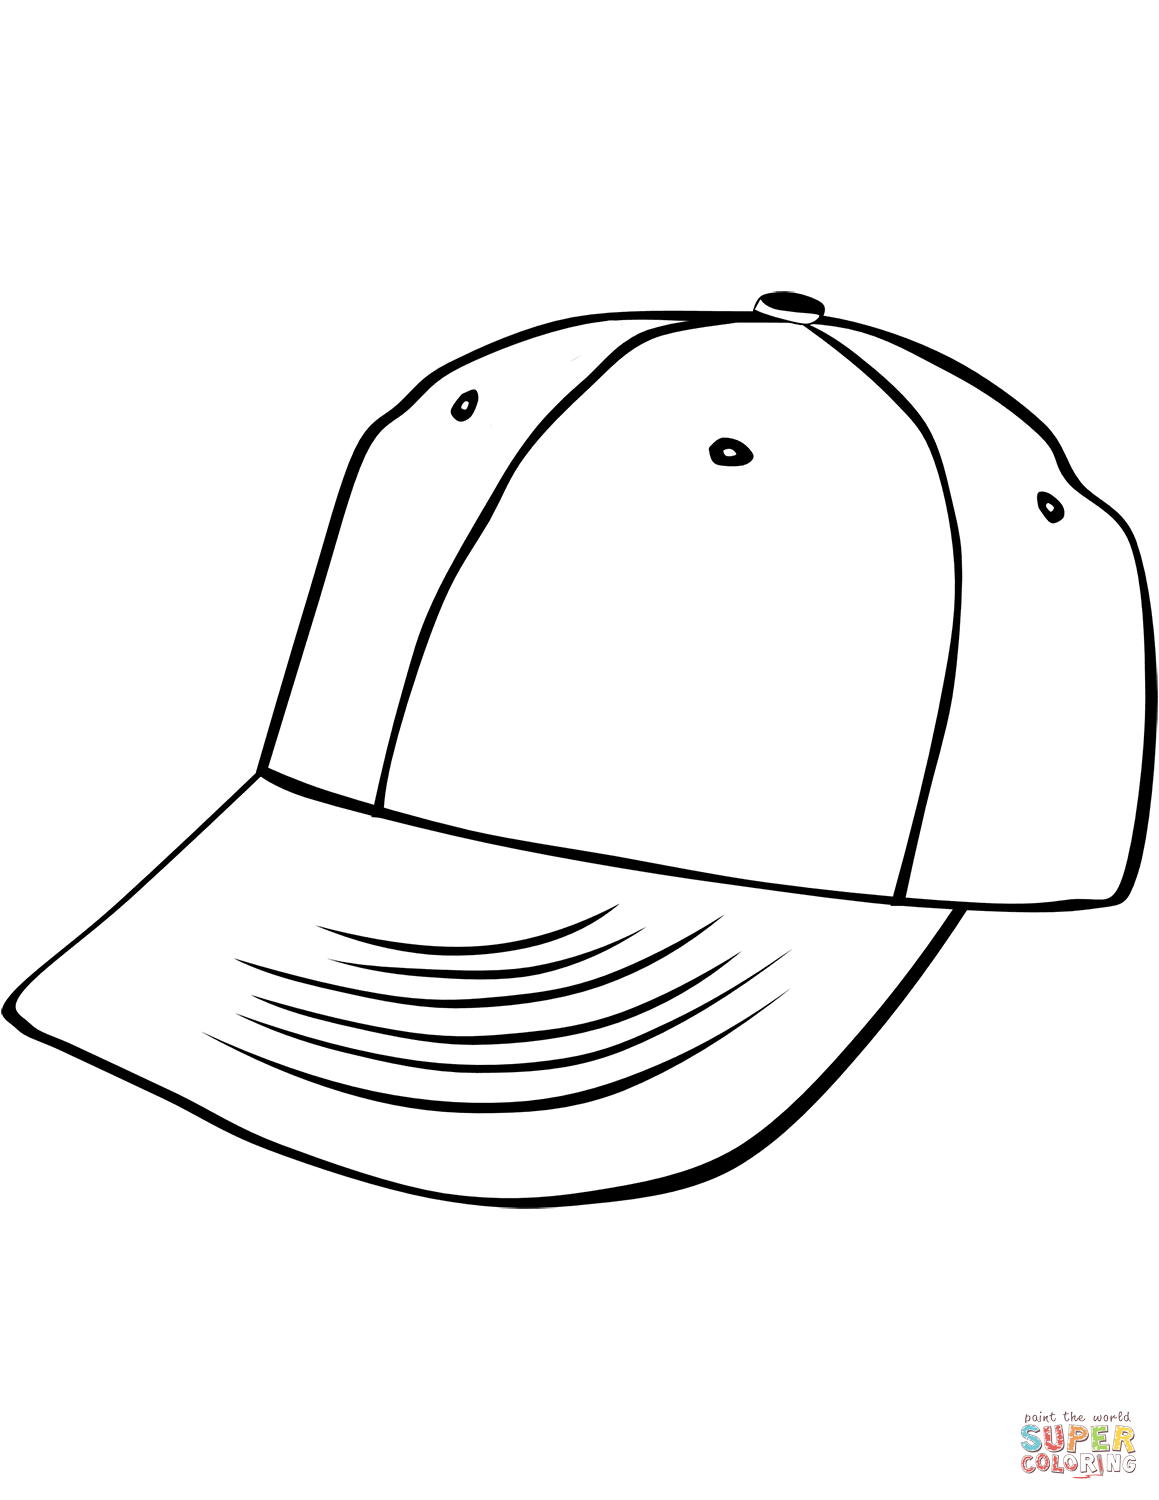 cap coloring page baseball cap coloring pages coloring pages to download coloring cap page